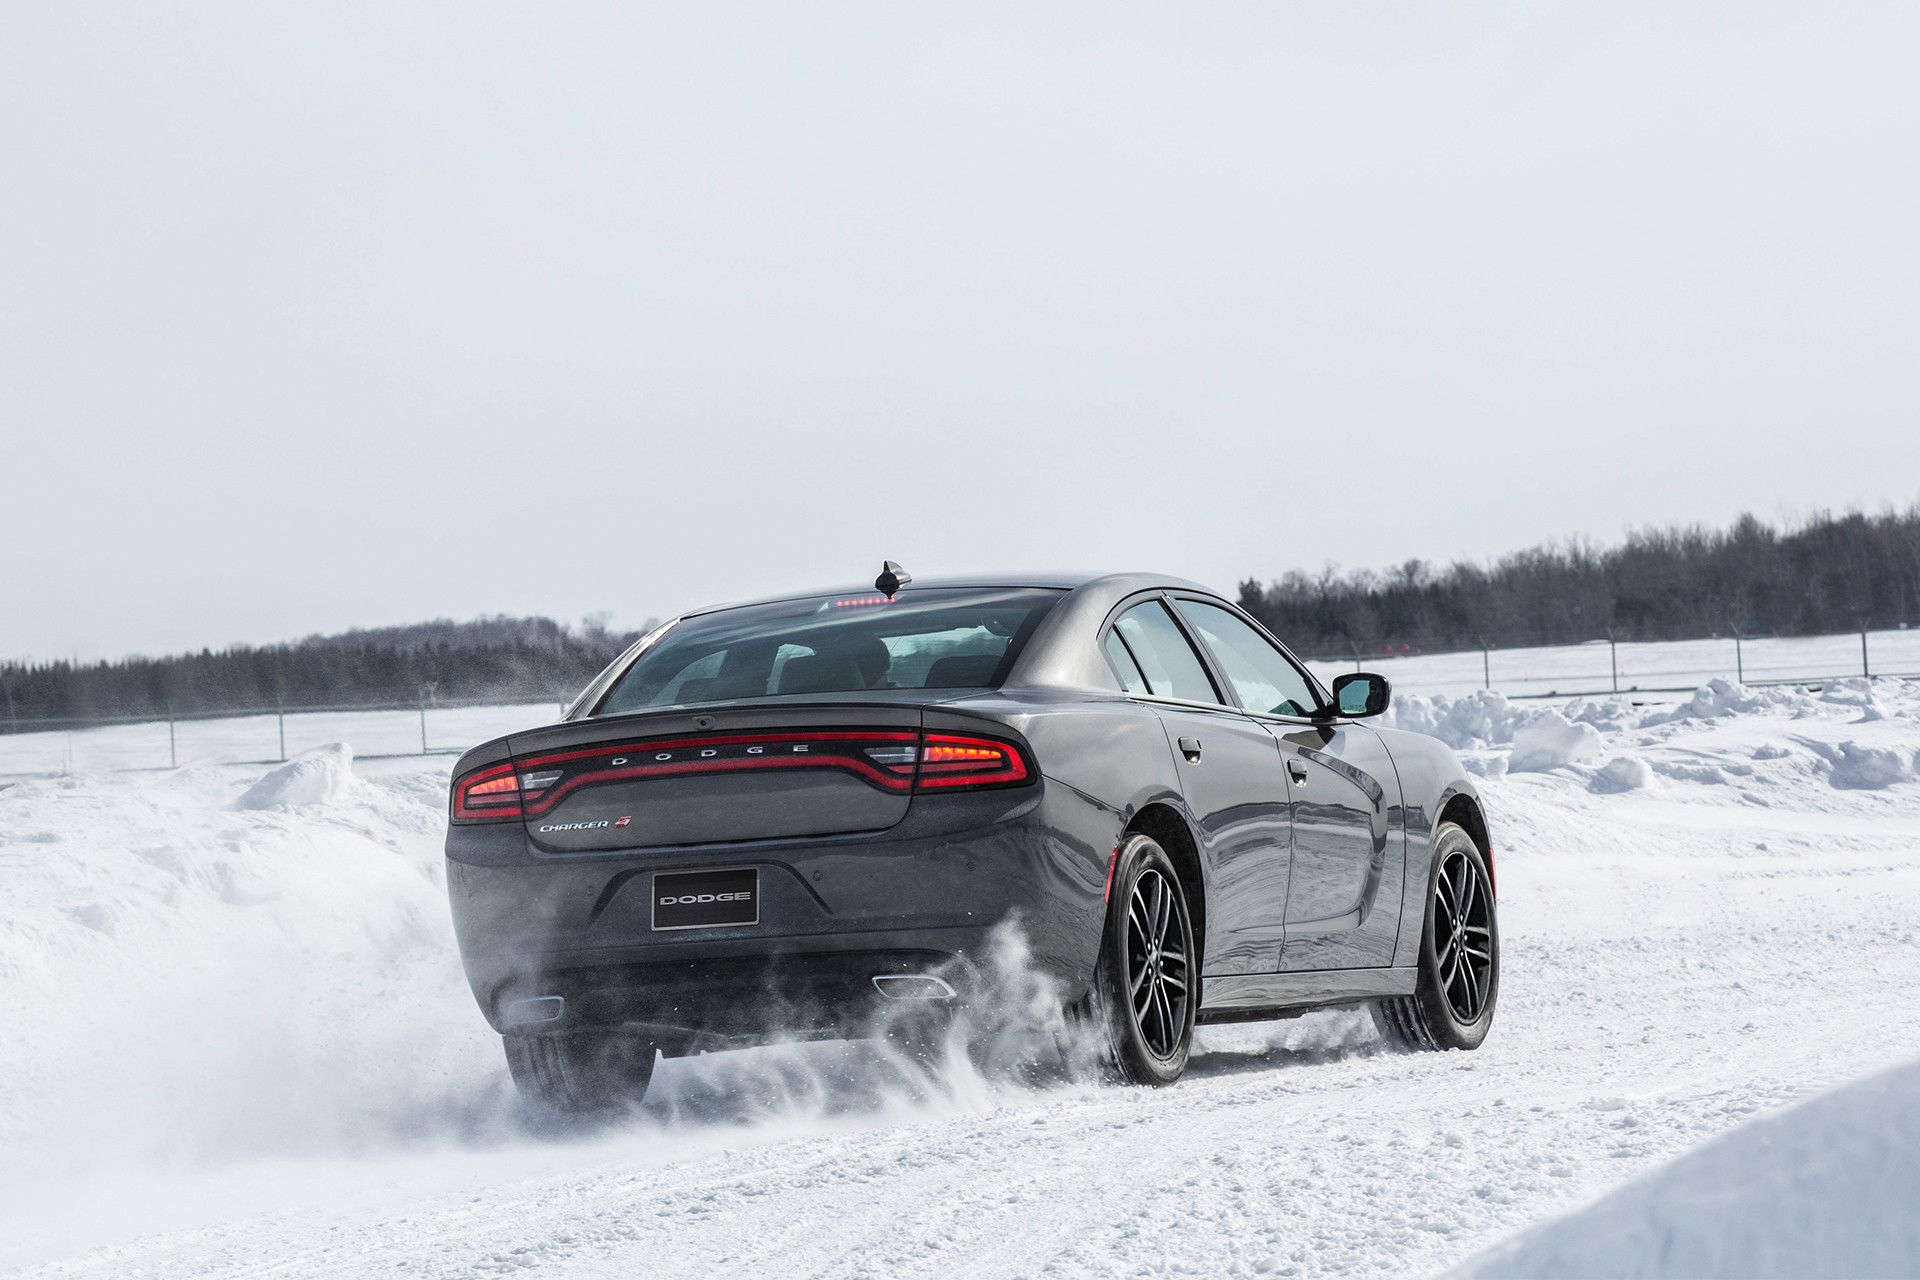 2019 Dodge Charger rear view of exterior, shown in silver